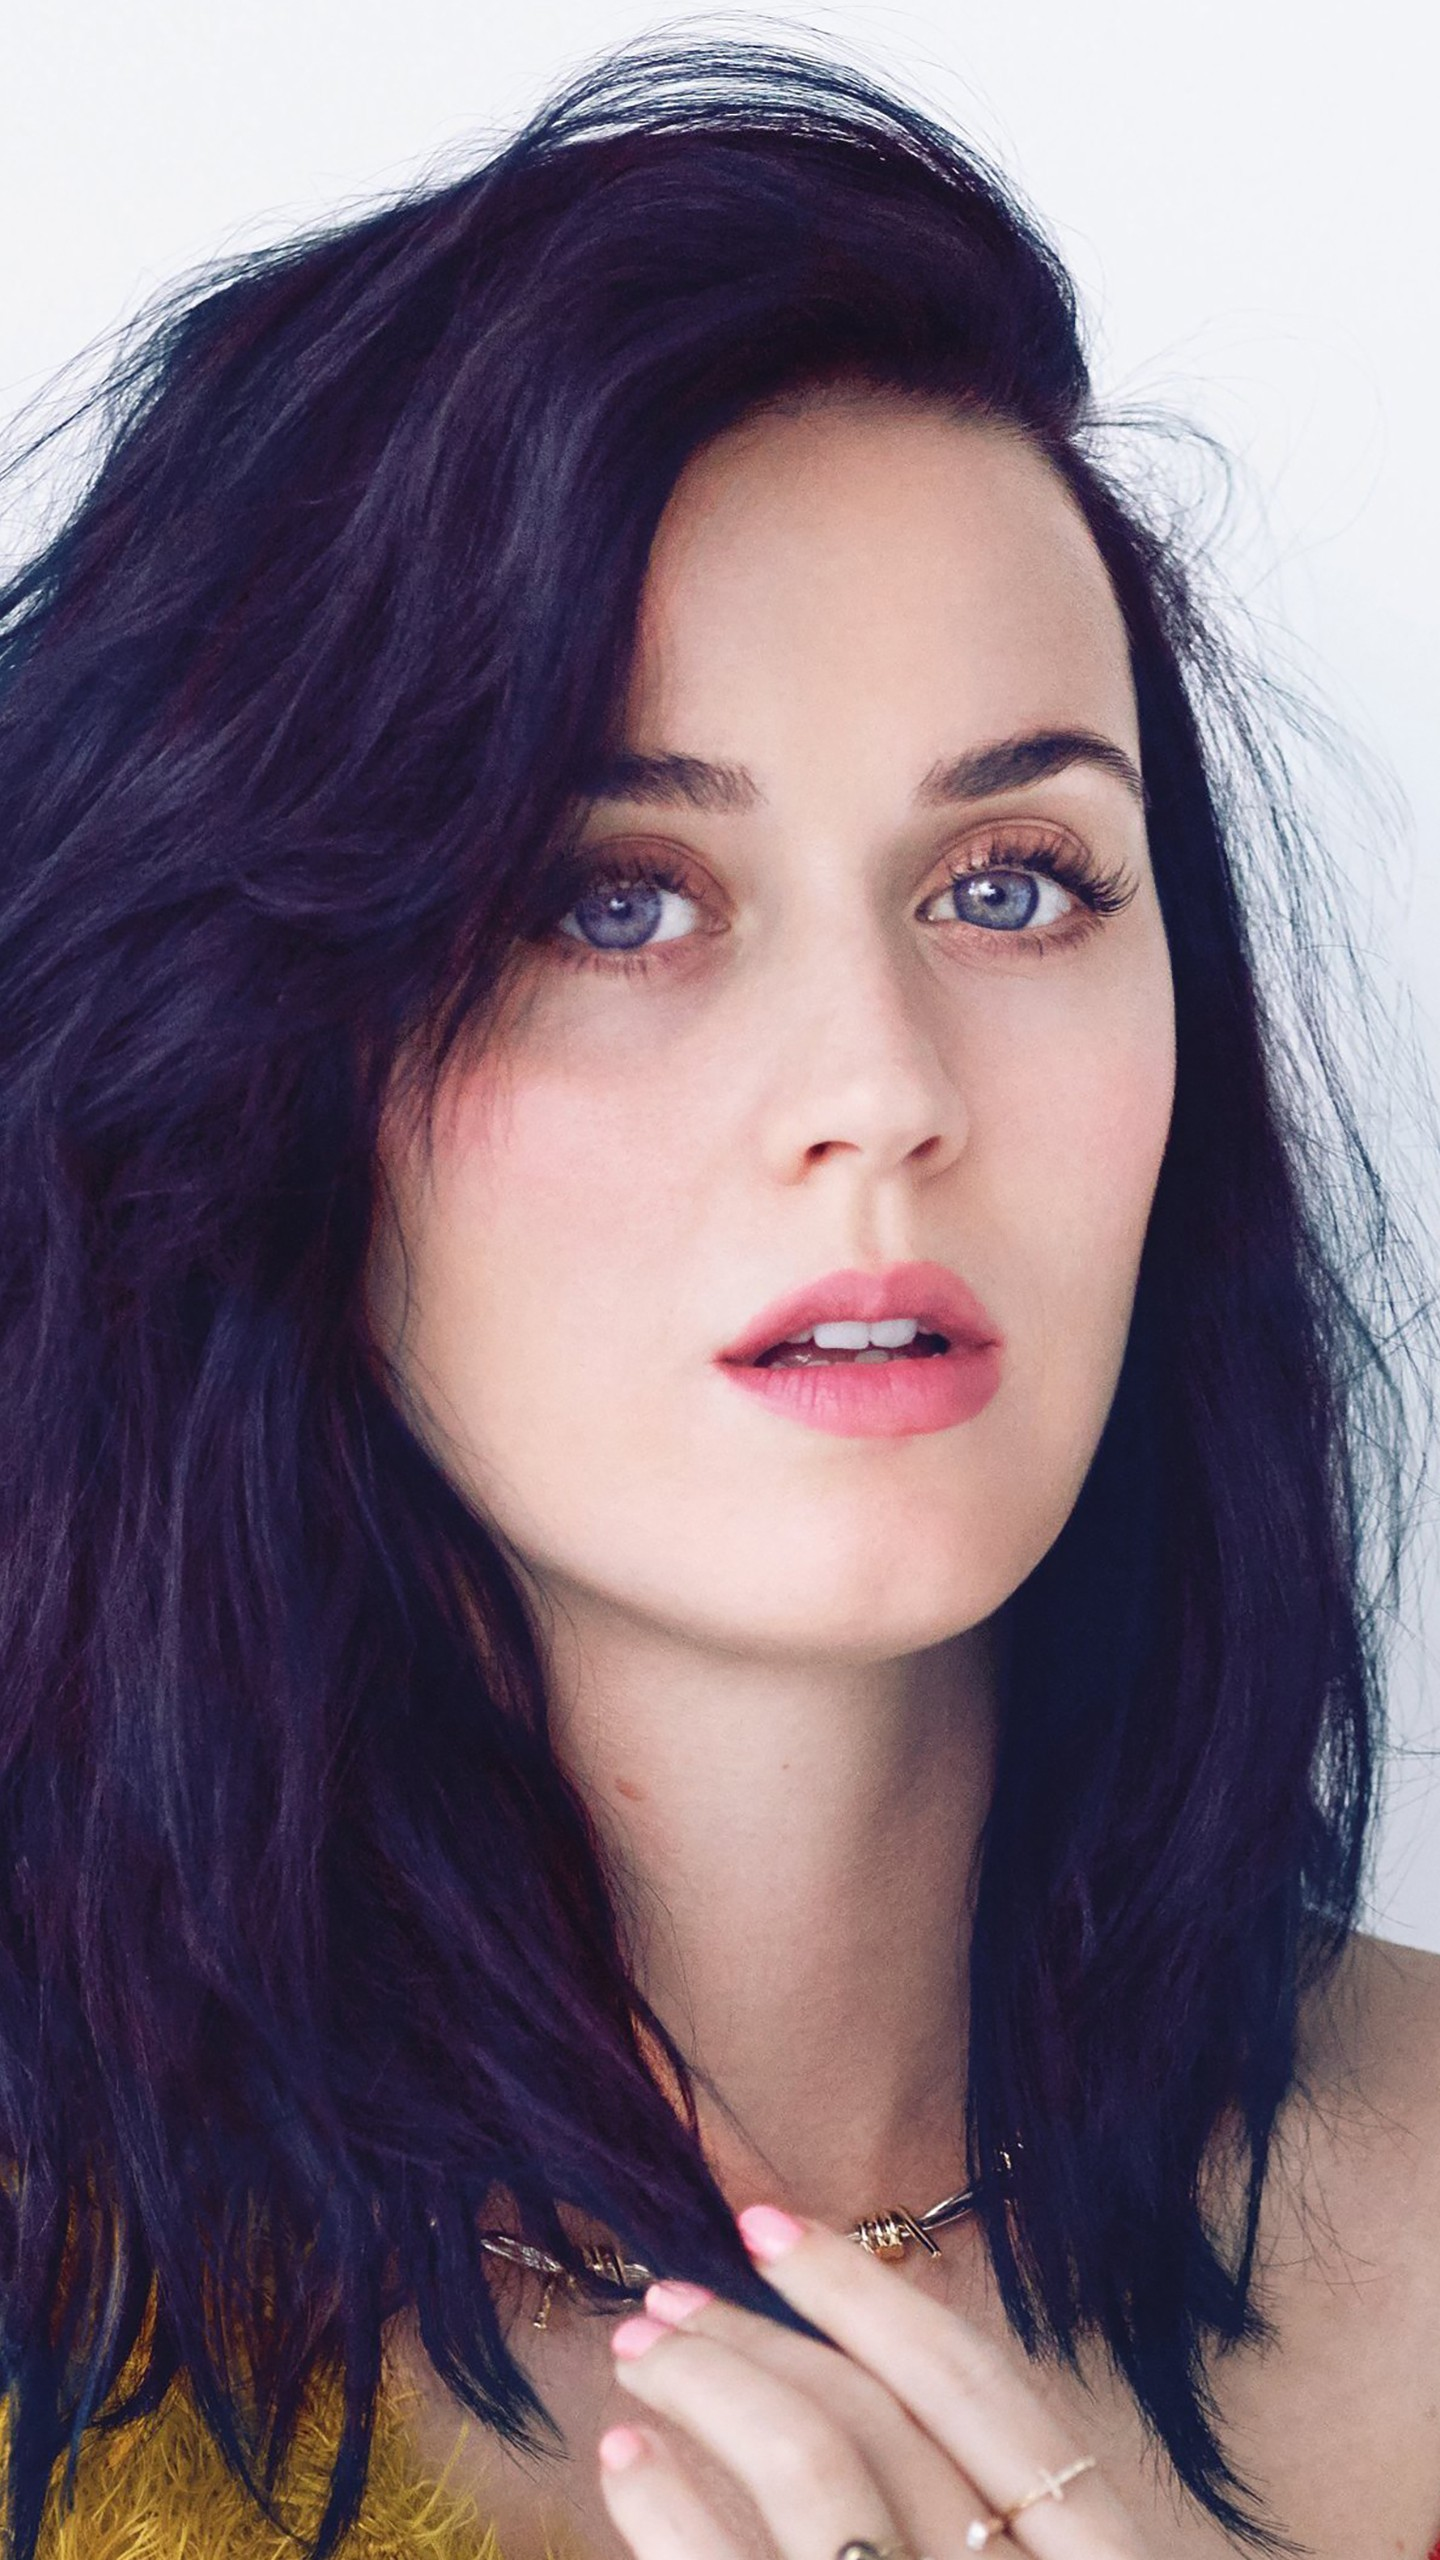 Stunning wallpaper katy perry Picture design Ideas For Your Home!